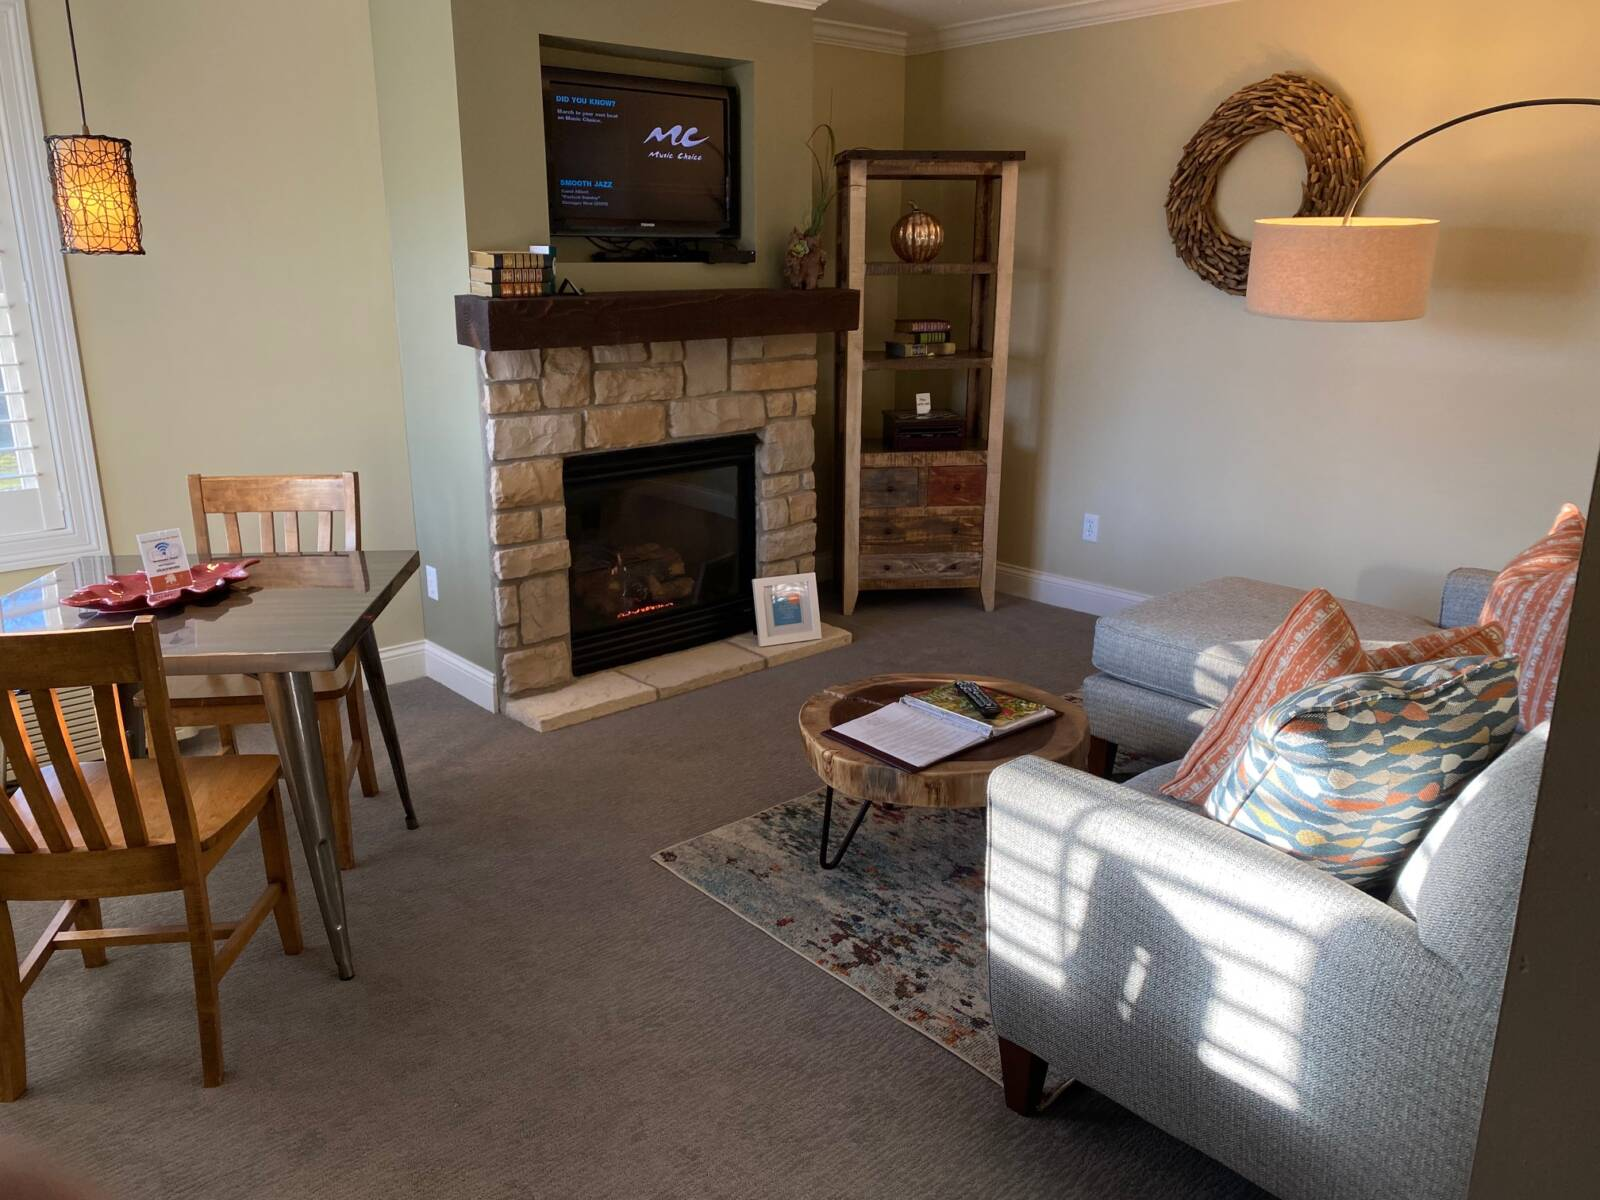 St Albans living room with fireplace